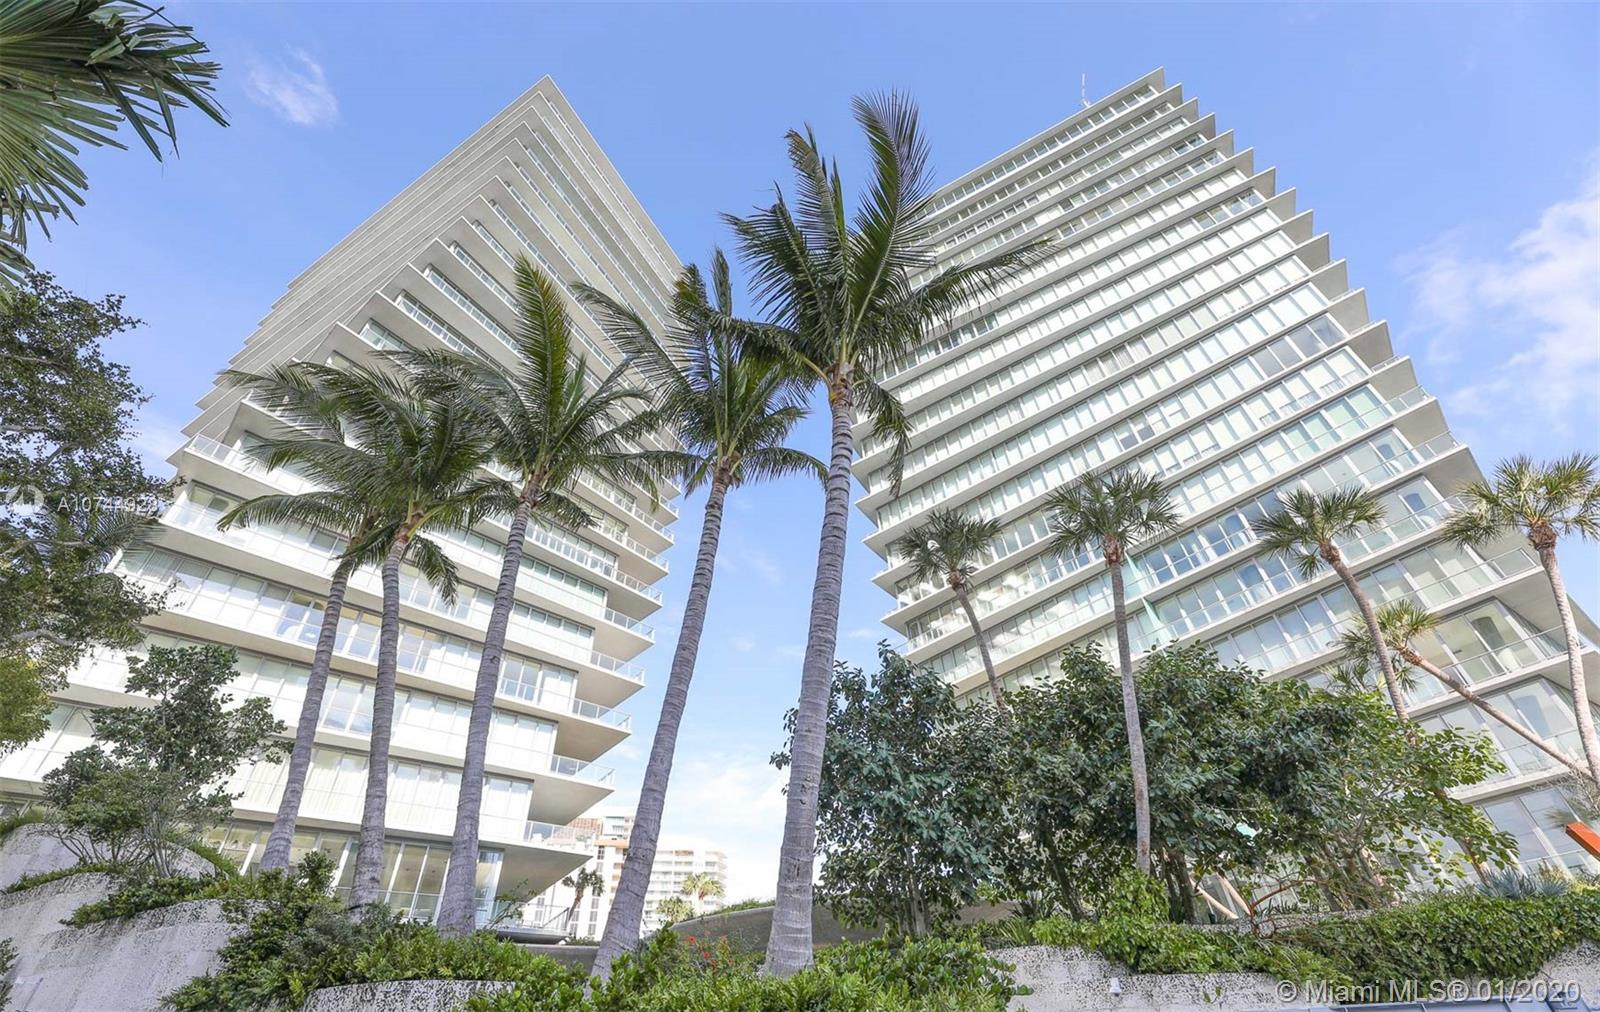 """THIS WORLD CLASS LISTING, """"THE DANCING TOWERS"""" IS WHAT MIAMI IS ALL ABOUT WITH ITS BREATH-TAKEN VIEWS OF BISCAYNE BAY AND MIAMI SKYLINE. THIS 4 BEDROOM, 4.5 BATH (4th BEDROOM IS A FULL MAIDS ROOM) LOCATED IN THE SOUTH TOWER ON THE 11TH FLOOR WITH A TOTAL ODF 4,383 SQ FT INCLUDING 839 FT WRAPAROUND BALCONY WITH STUNNING OCEAN VIEWS AND 3,544 OF LIVING SPACE. FEATURING CUSTOM 36X36 SPANISH PURE WHITE MARBLE FLOORS THROUGHOUT THE COMMON AREAS AND KITCHEN.BEDROOMS HAVE BRAZILIAN EXOTIC 9 INCHES WOOD FLOORS AND ELECTRIC BLACKOUT SHADES. PREMIUM NIELE KITCHEN APPLIANCES."""